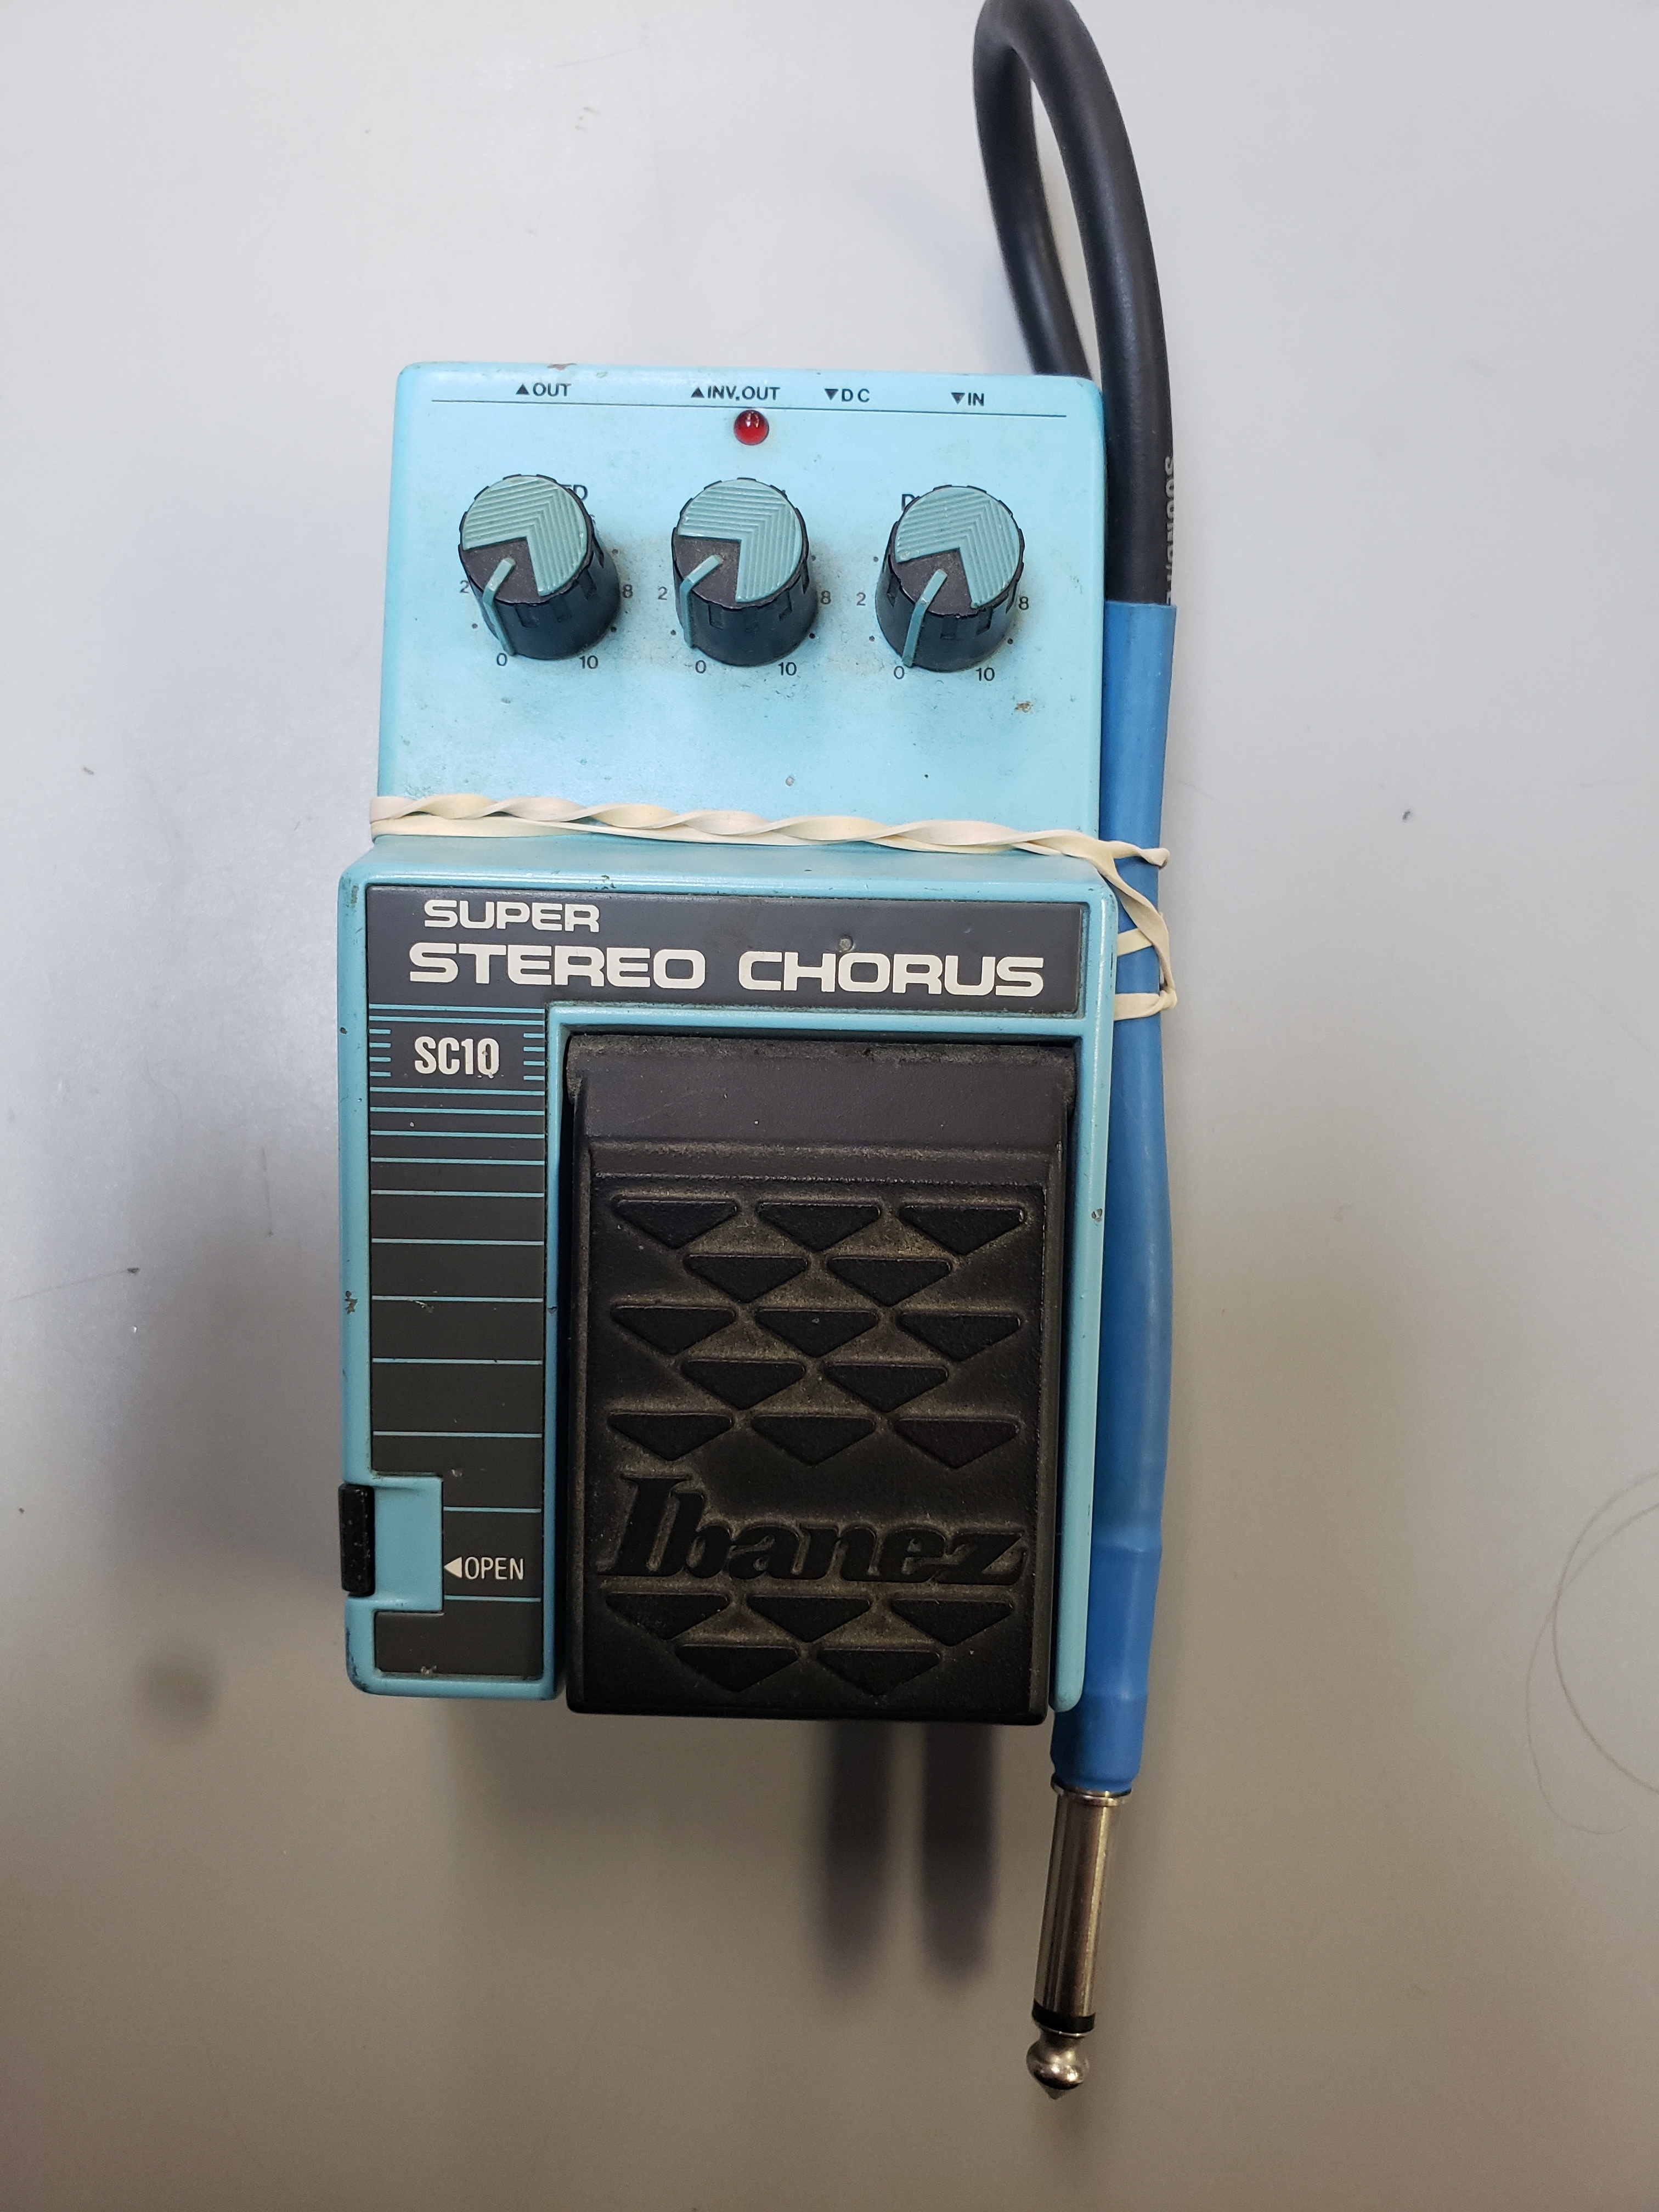 IBANEZ - SC10 - SUPER STEREO CHORUS GUITAR EFFECTS PEDAL W/ CORD